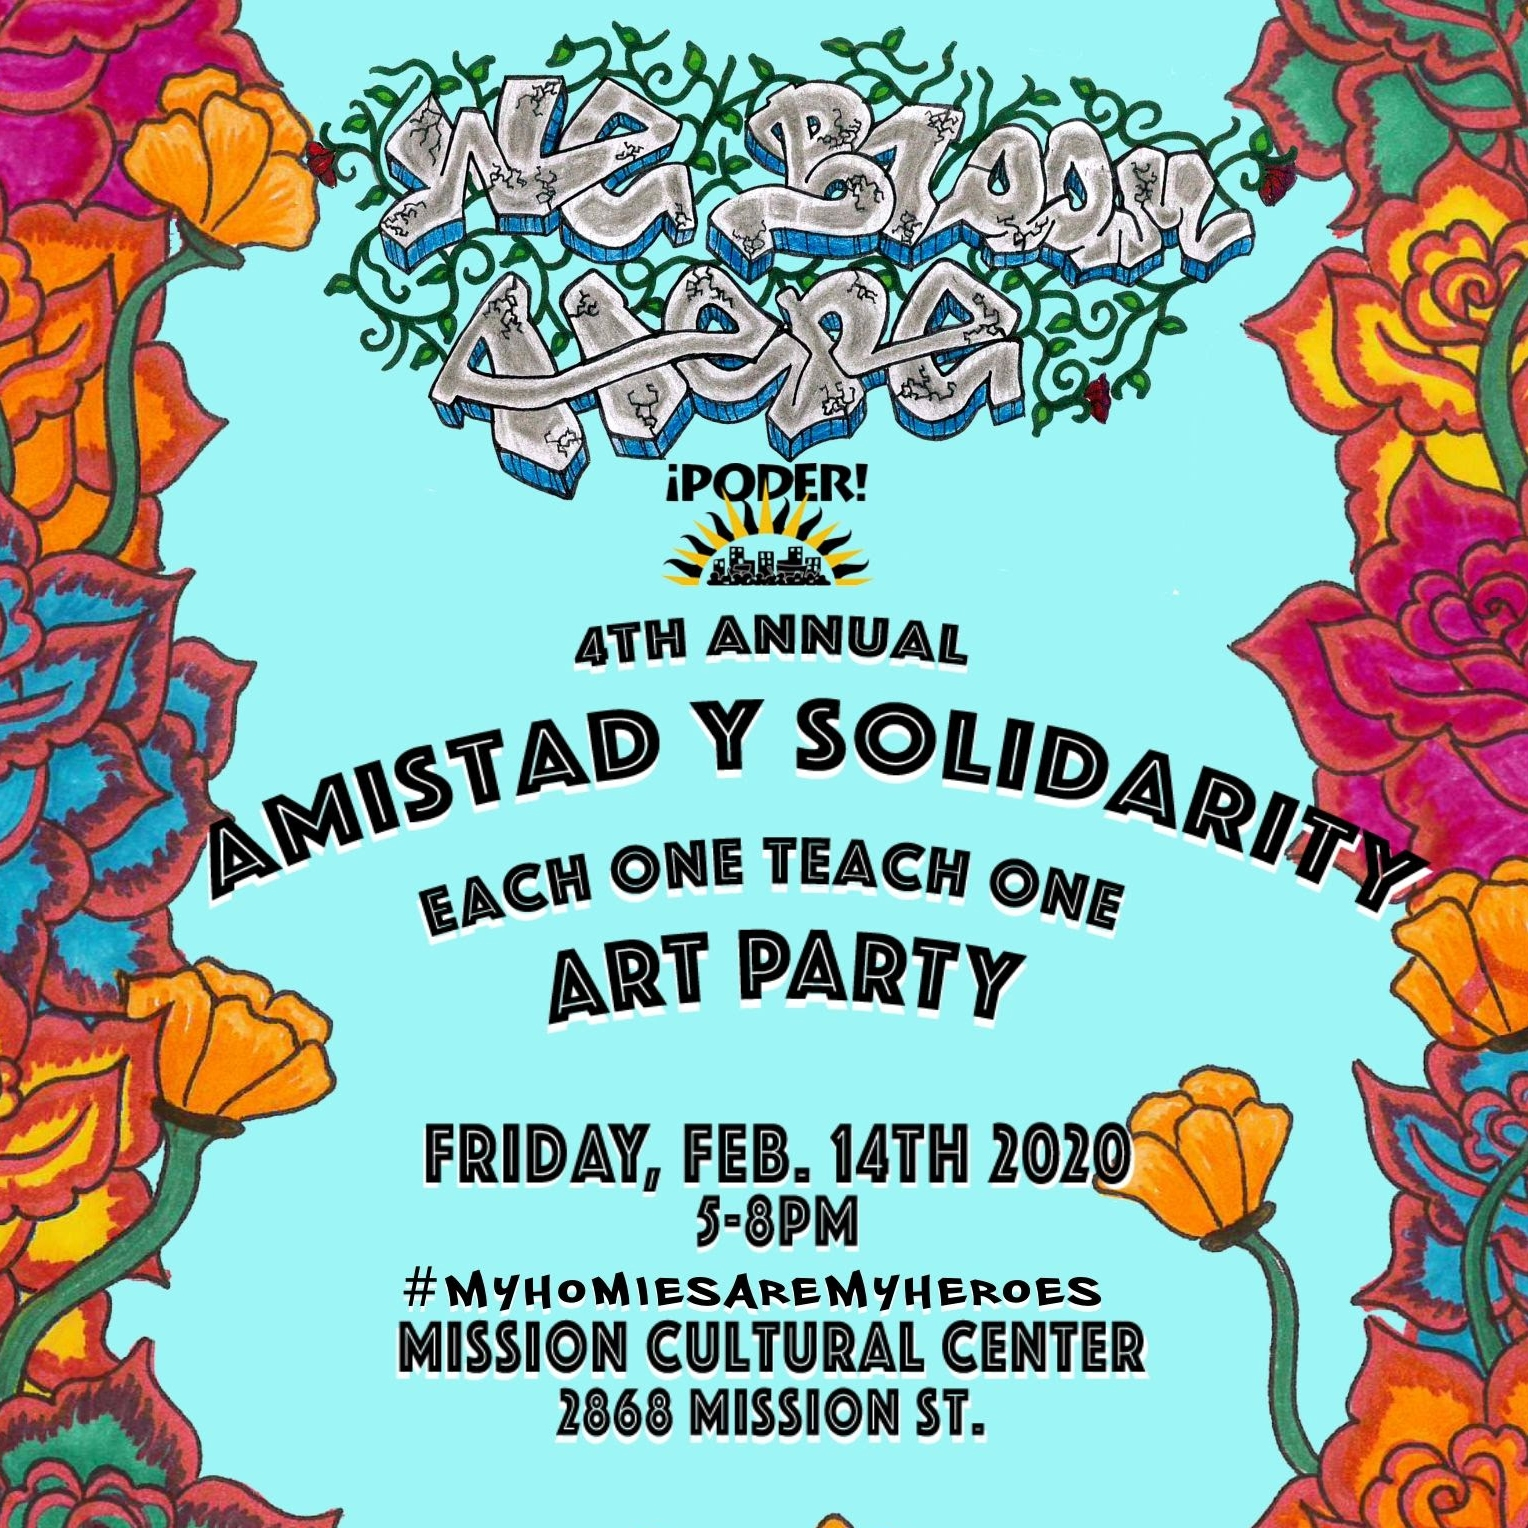 We Bloom Here: Poder! 4th Annual Amistad Y Solidarity Each One Teach One Art Party. Friday Feb 14th 2020. #MyHomiesAreMyHeroes at Mission Cultural Center 2868 Mission St.